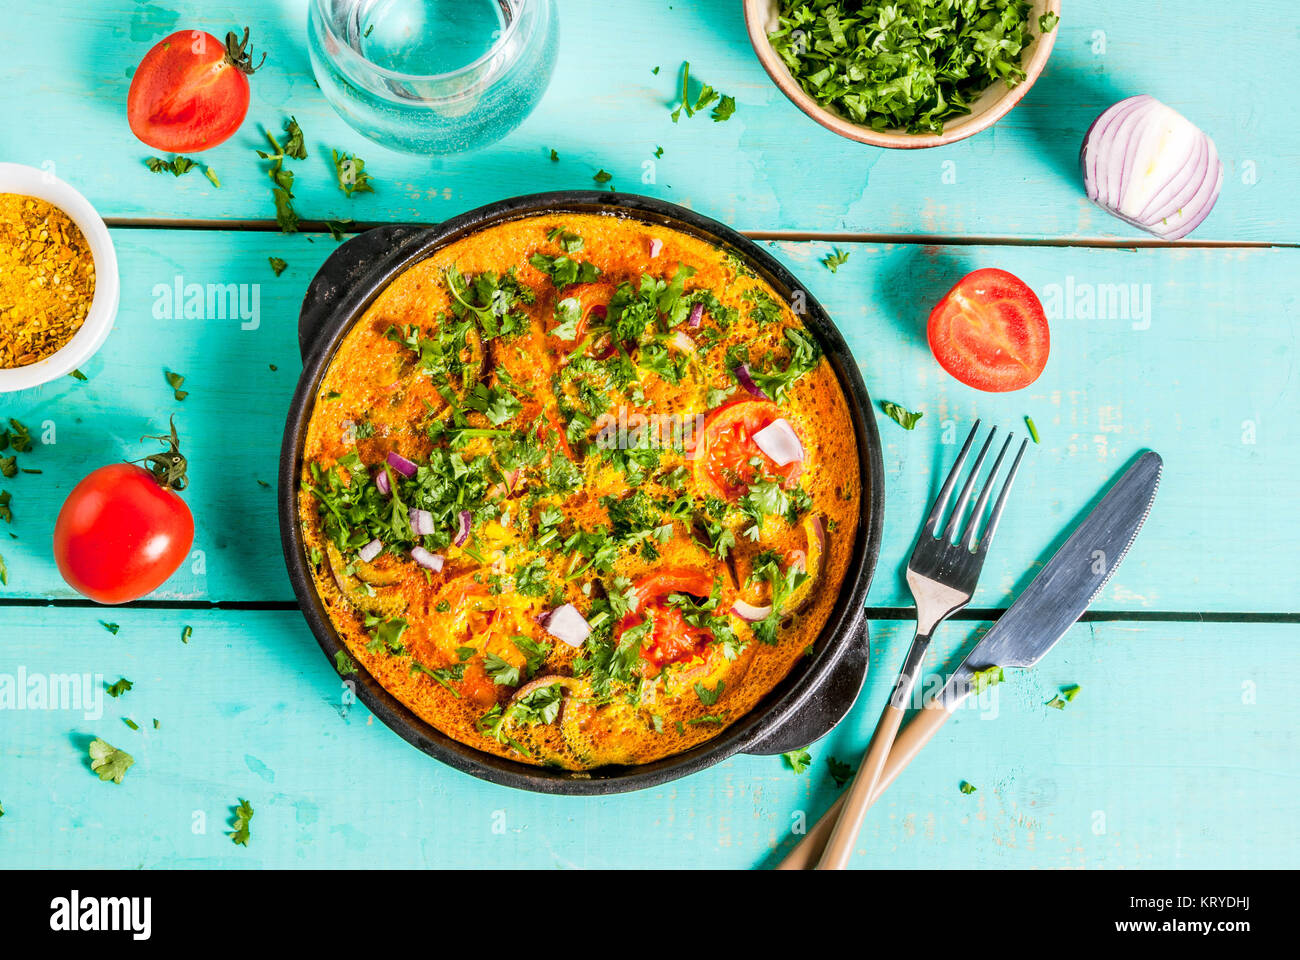 Indian food recipes indian masala egg omelet with fresh vegetables indian food recipes indian masala egg omelet with fresh vegetables tomato hot chili pepper parsley light blue wooden background copy space top forumfinder Images